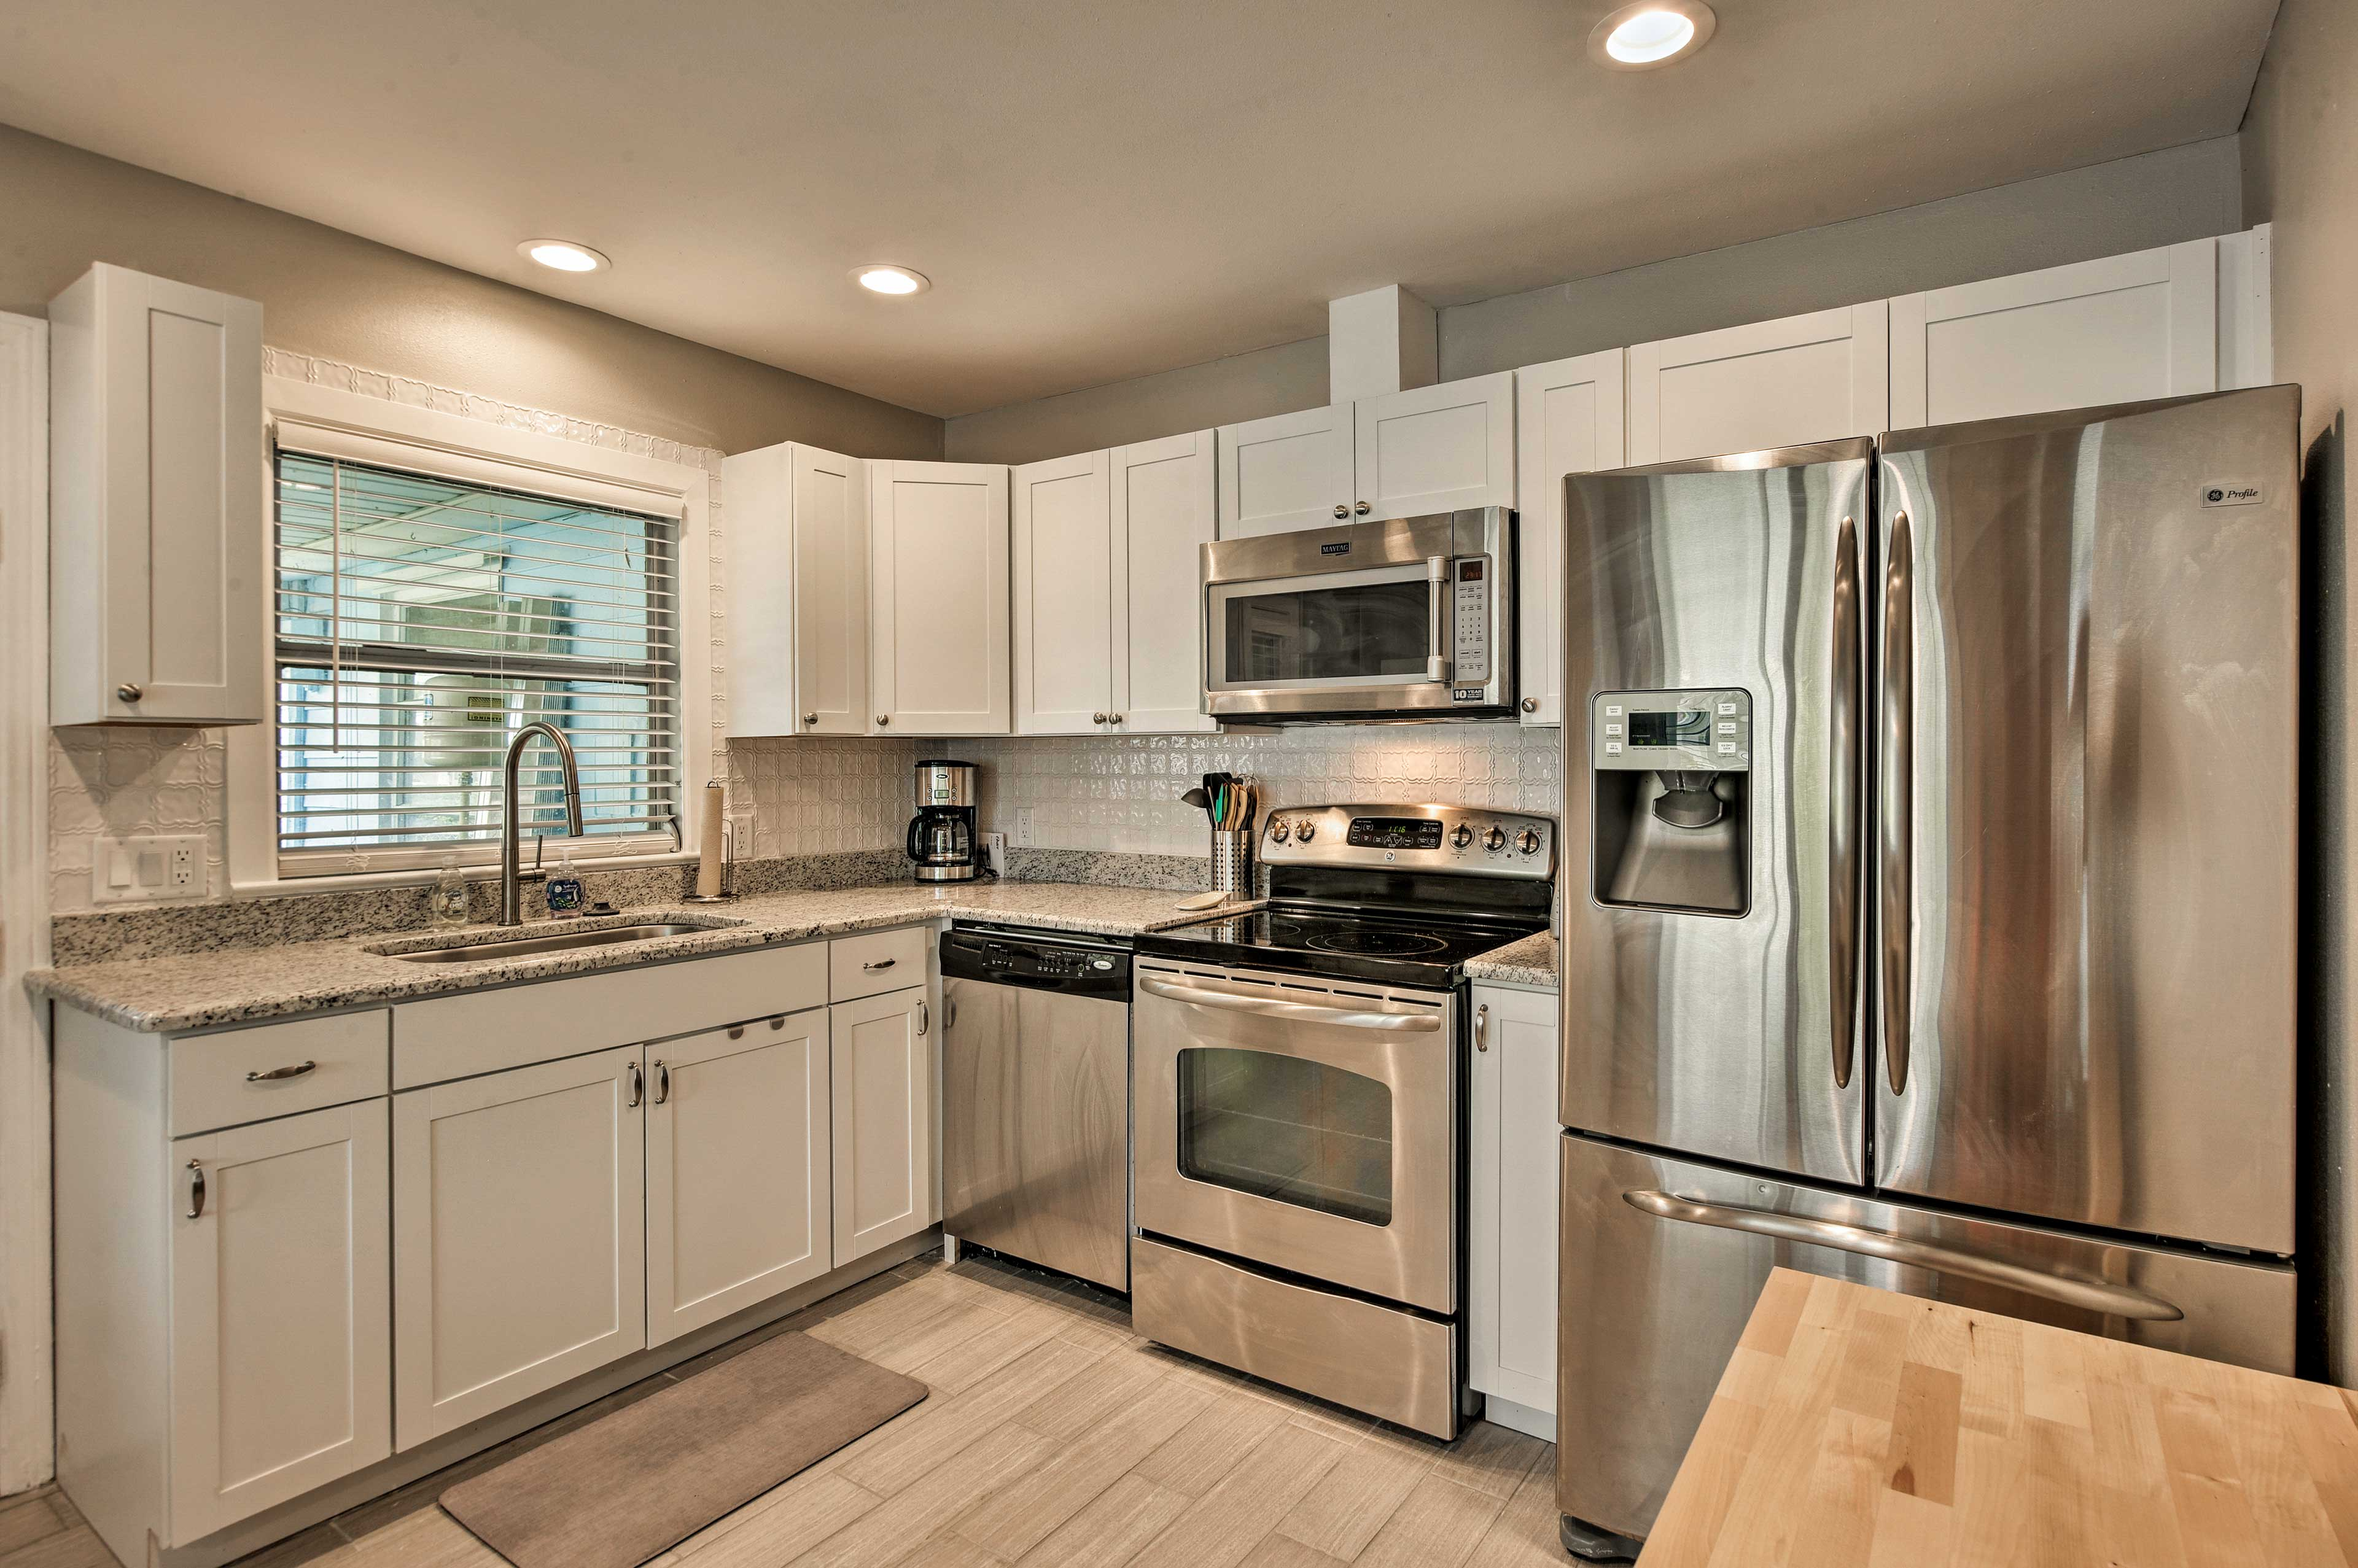 Crisp while cabinets and stainless steel appliances elevate the space.